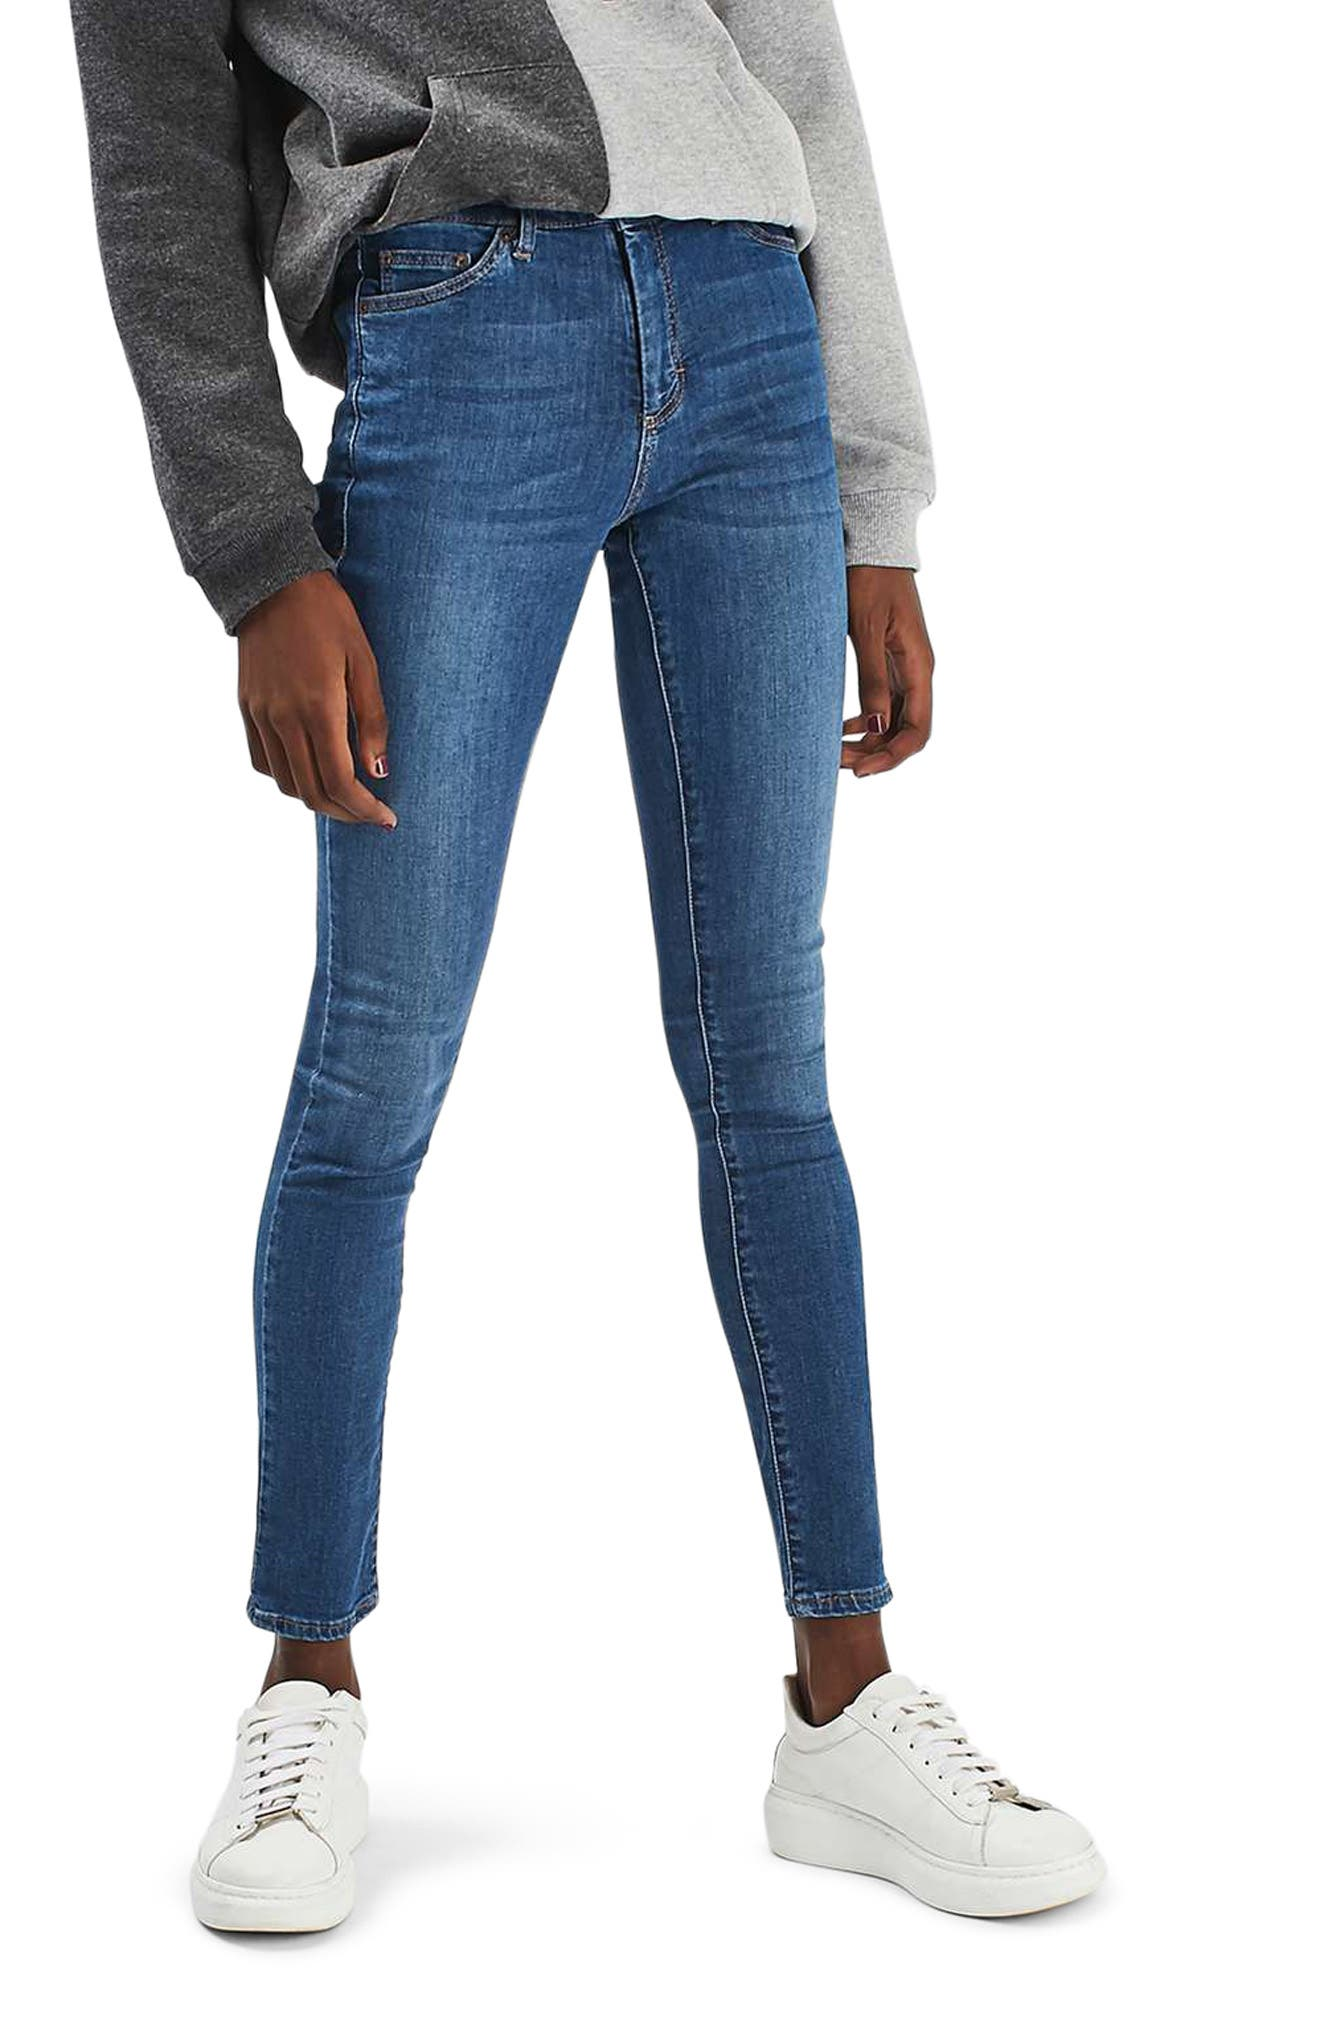 Leigh Skinny Jeans,                             Main thumbnail 1, color,                             Mid Denim